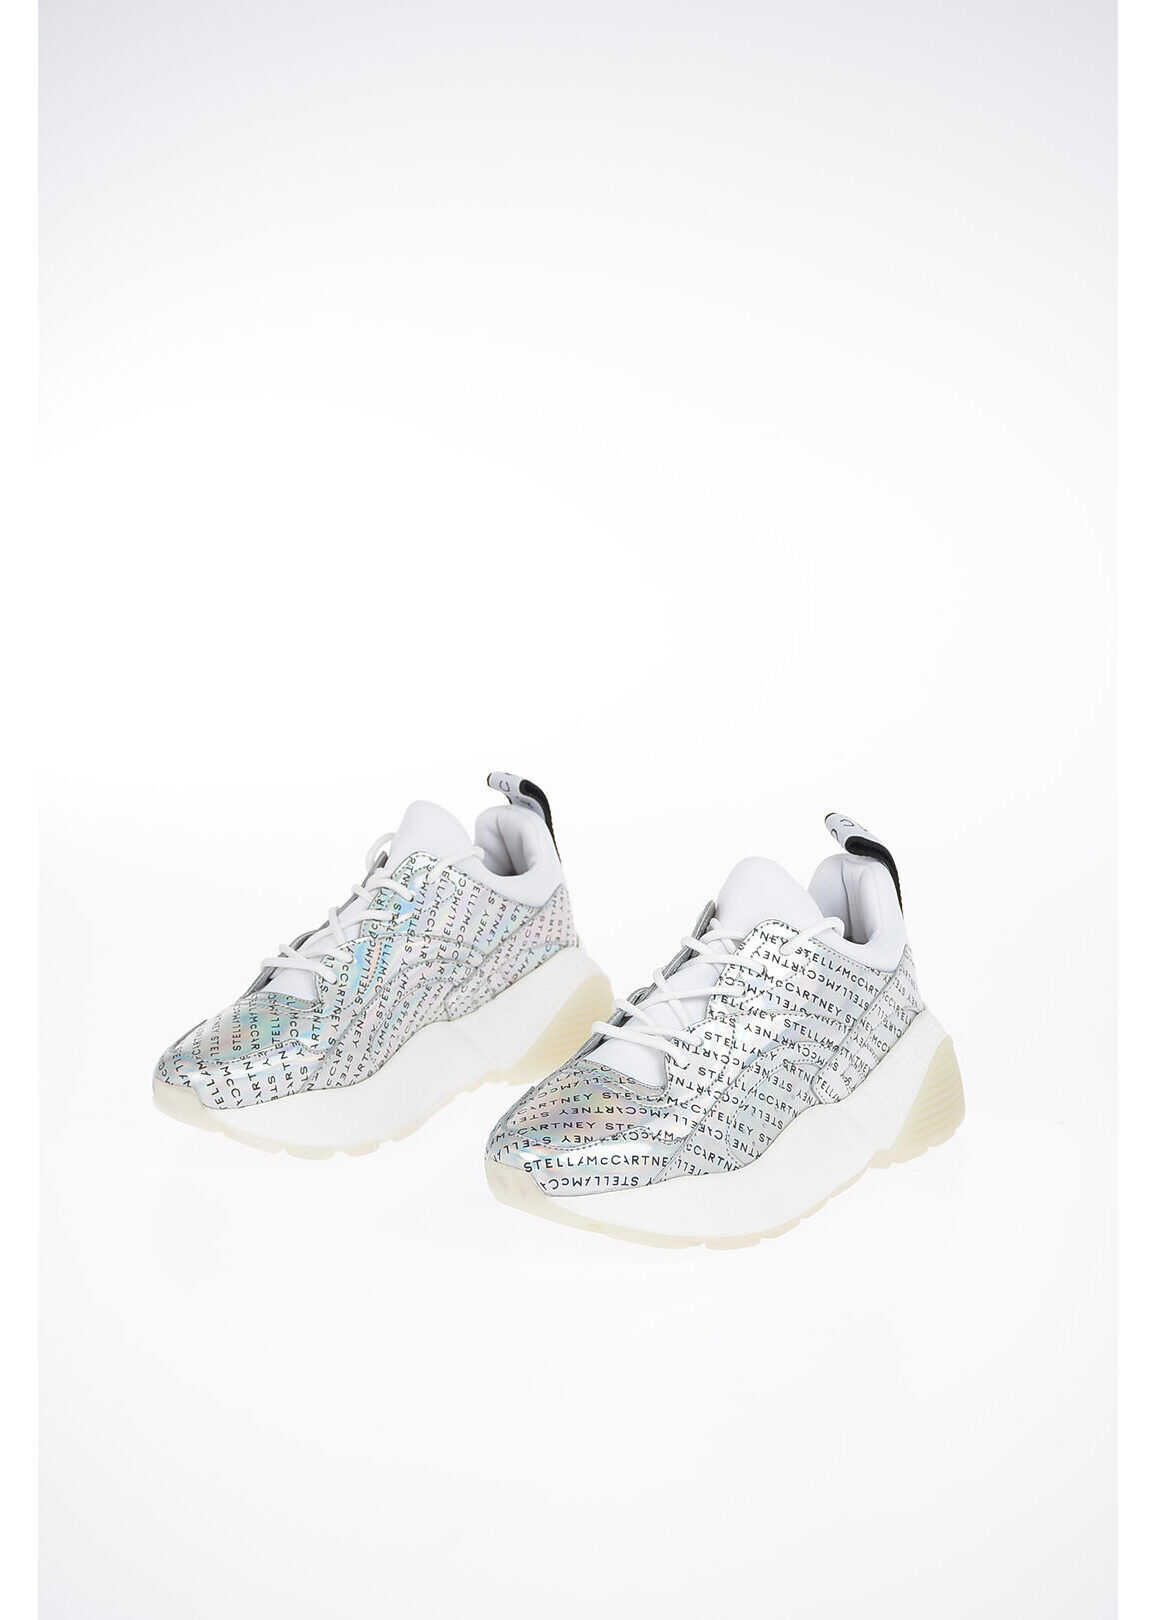 Stella McCartney Hologram Faux Leather Sneakers SILVER imagine b-mall.ro